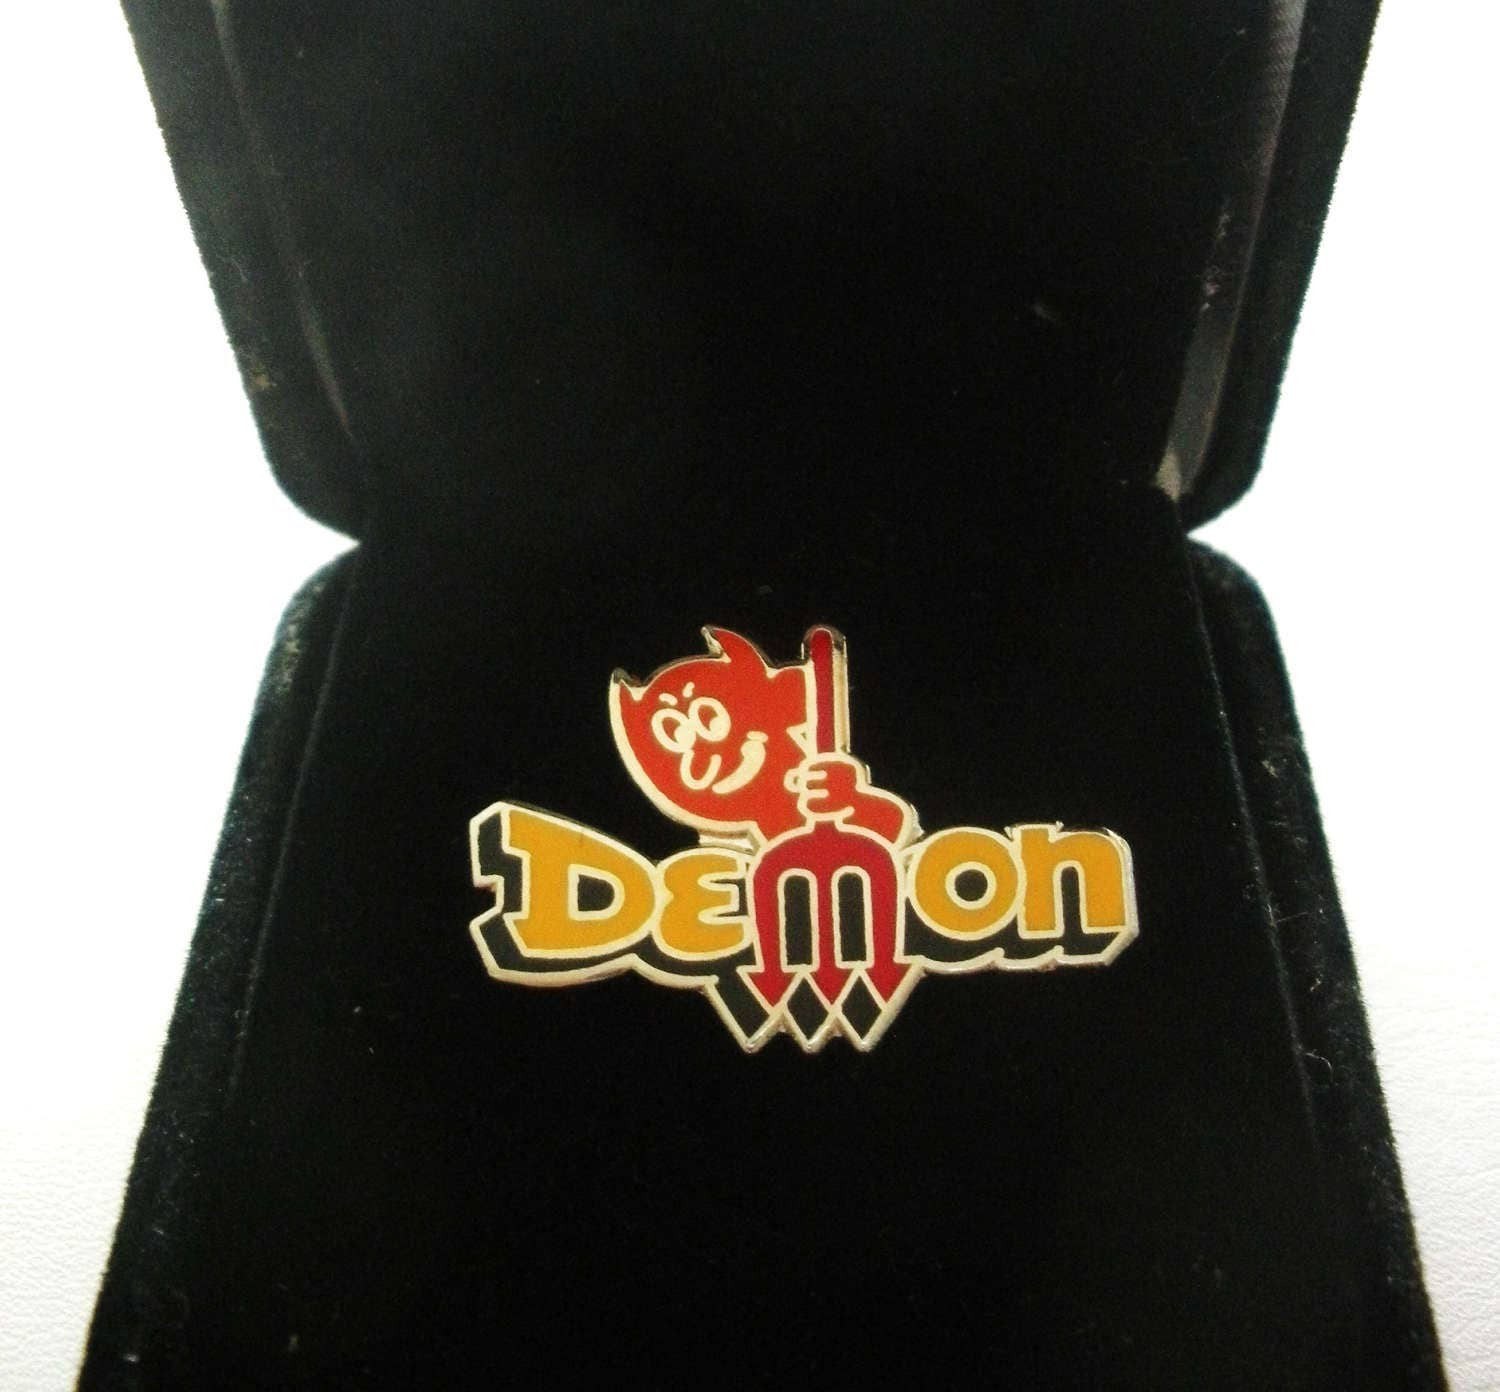 dodge demon vintage sammler hut pin anstecknadel etsy. Black Bedroom Furniture Sets. Home Design Ideas